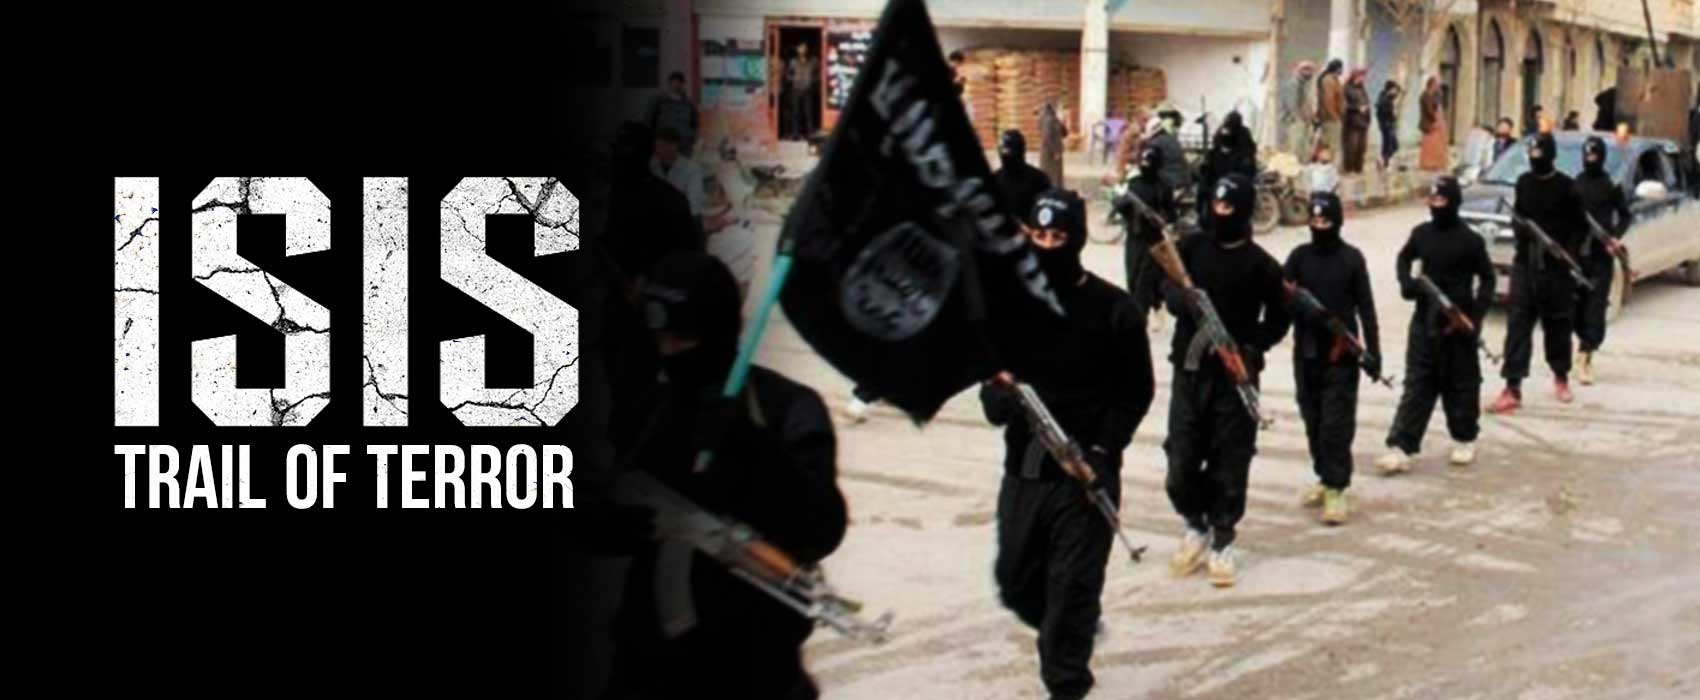 High Resolution Wallpaper   Isis 1700x700 px